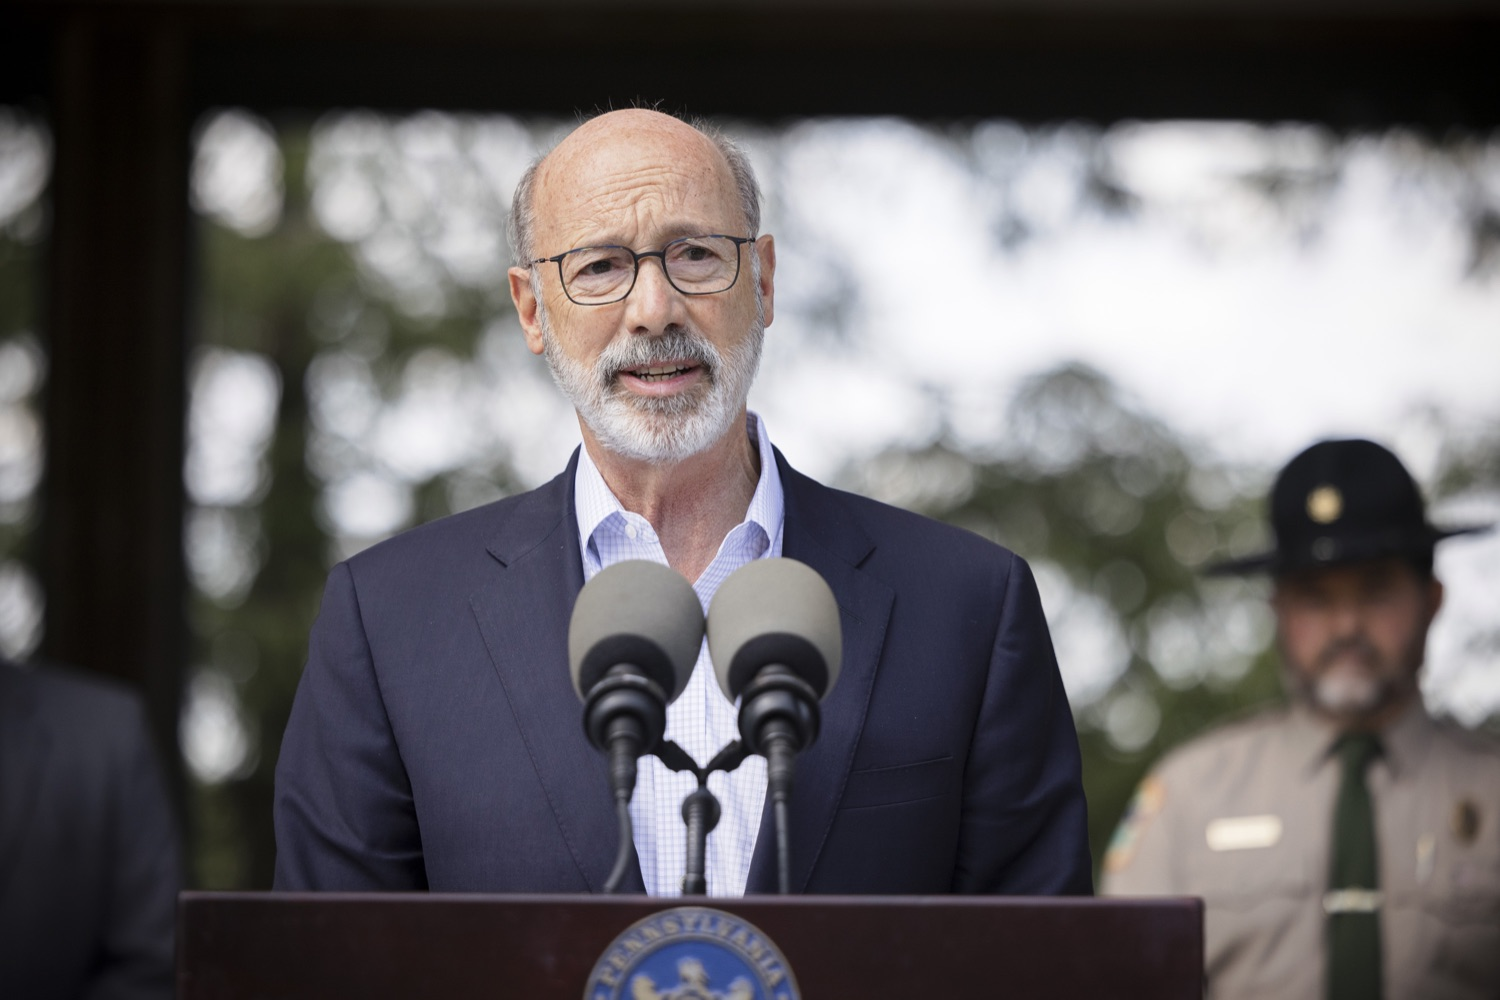 """<a href=""""https://filesource.wostreaming.net/commonwealthofpa/photo/19111_gov_parkVaccines_dz_016.jpg"""" target=""""_blank"""">⇣Download Photo<br></a>Pennsylvania Governor Tom Wolf speaking with the press.  Governor Tom Wolf today announced that the Department of Health (DOH) and Department of Conservation and Natural Resources (DCNR) are partnering to hold COVID-19 vaccine clinics at five state parks across the commonwealth to help expand access to the COVID-19 vaccine.  Harrisburg, PA -- September 10, 2021"""